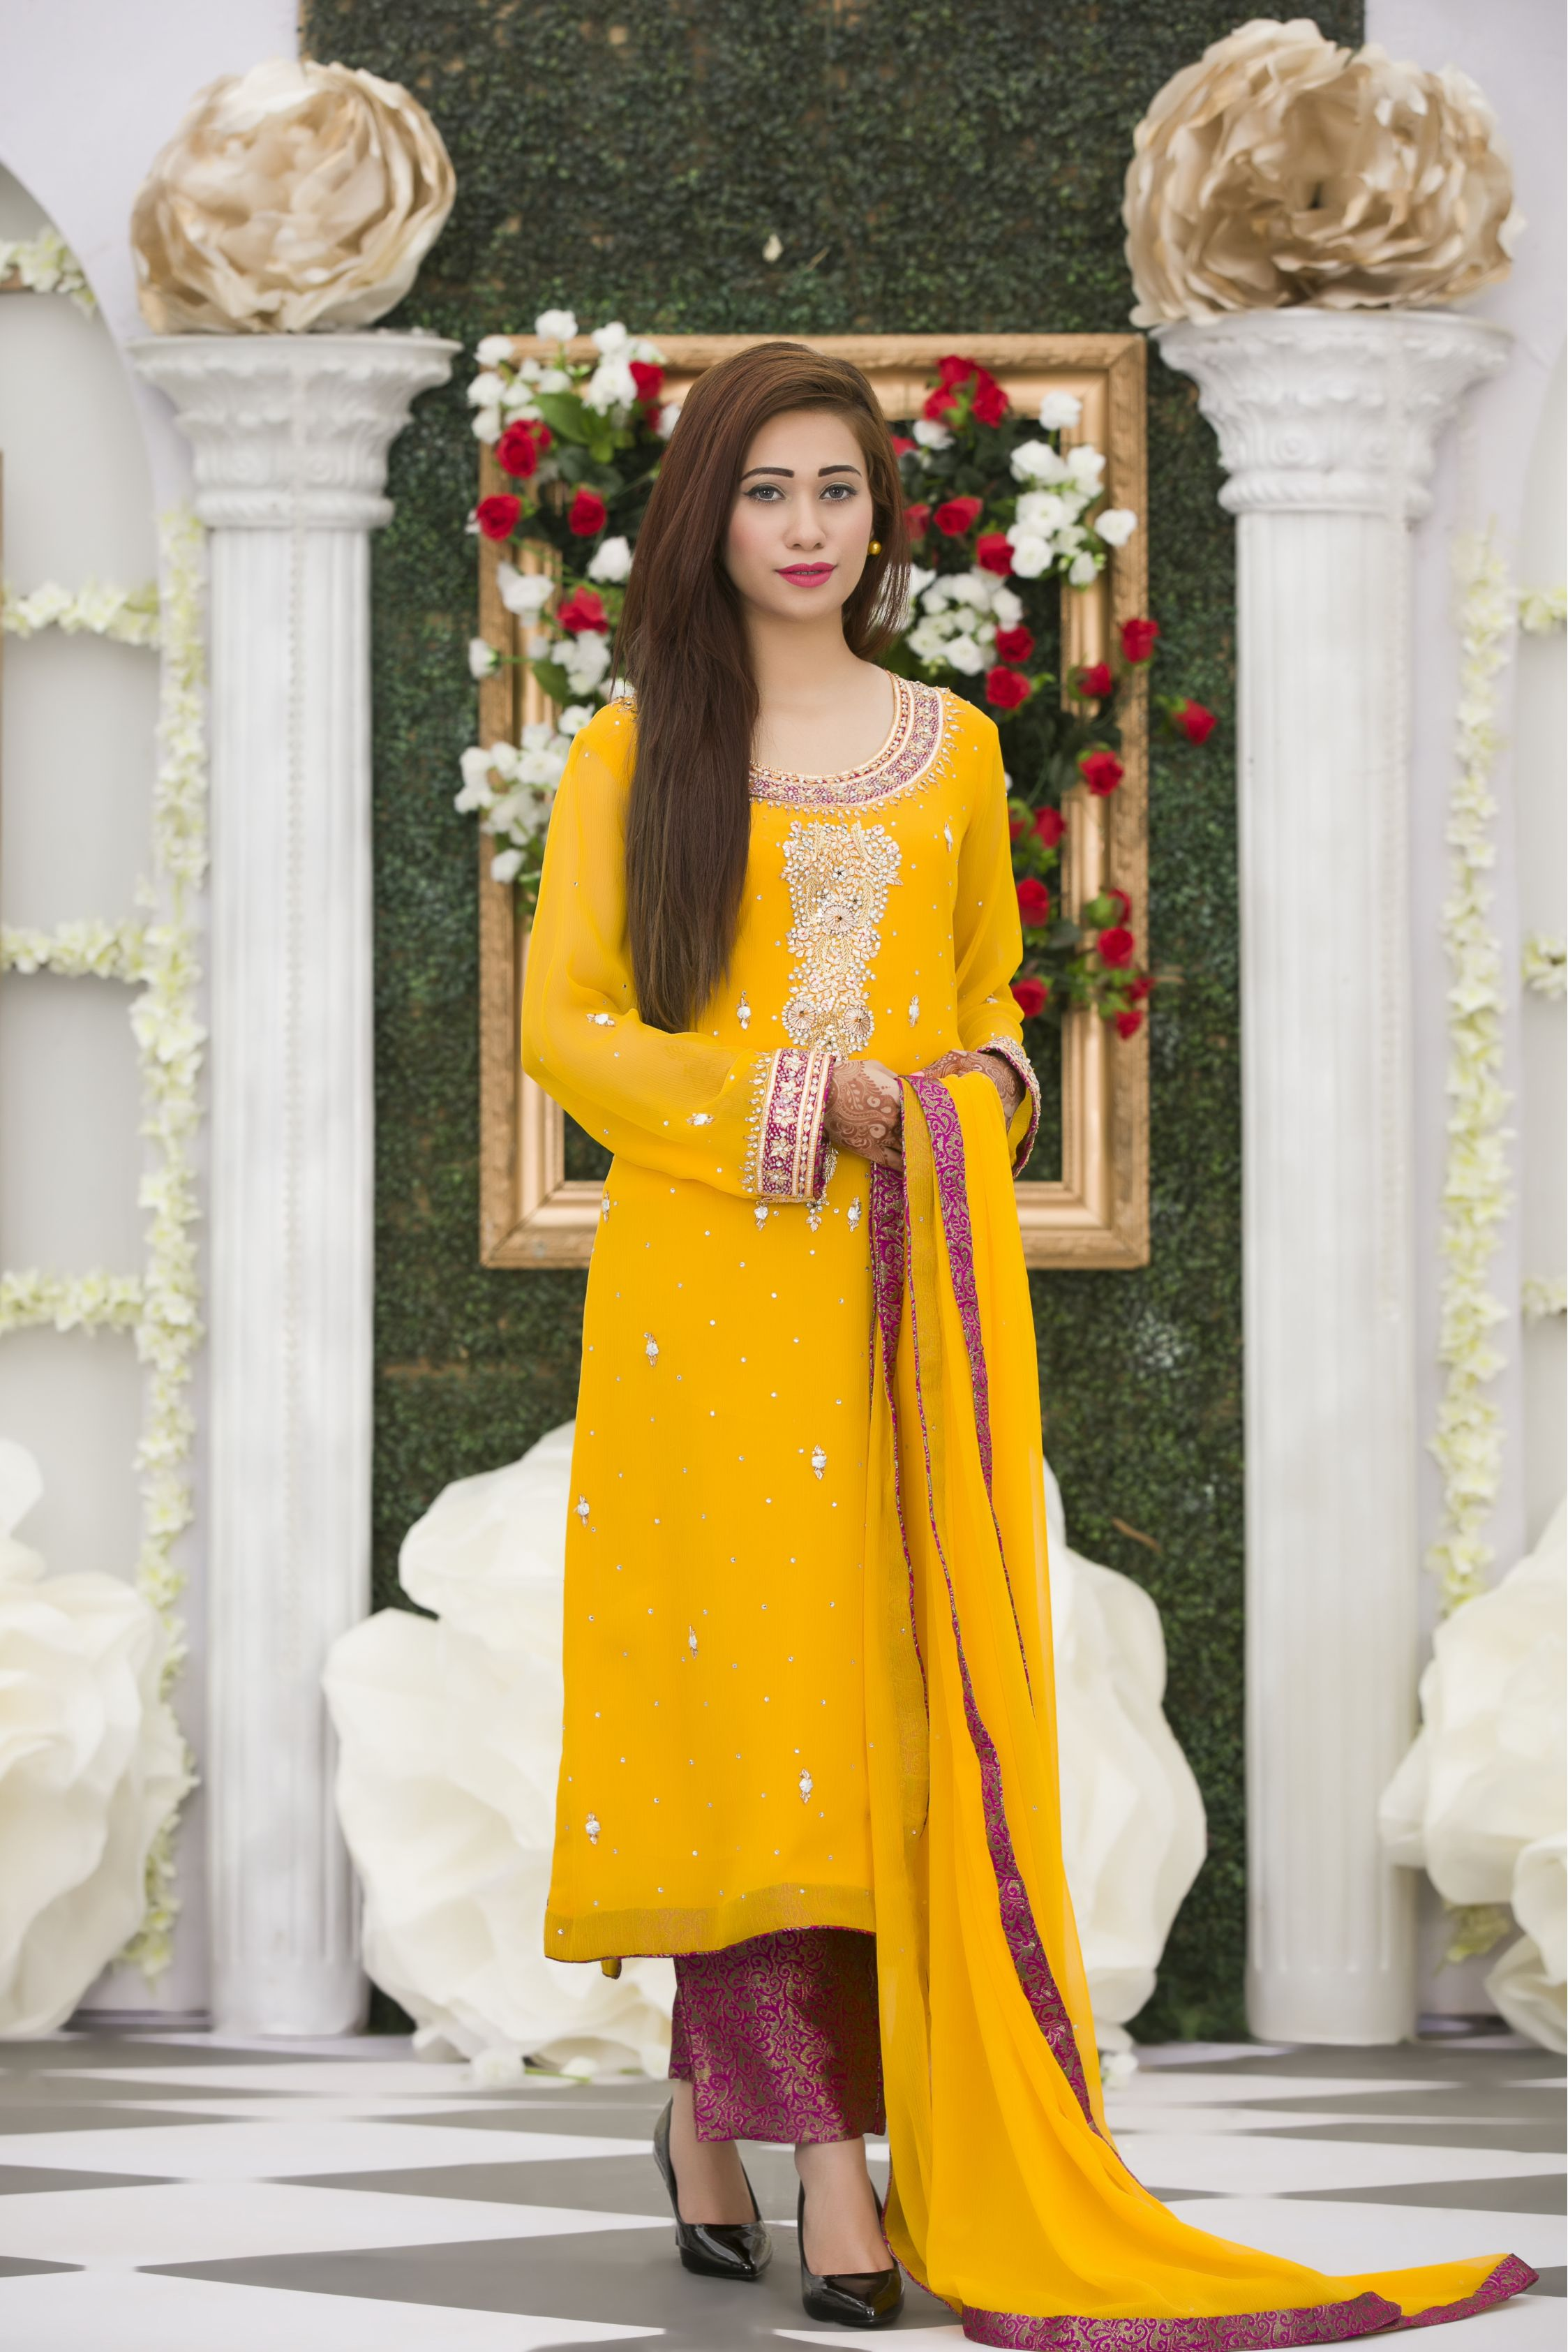 White Mehndi Outfits : Exclusive yellow magenta mehndi dress online